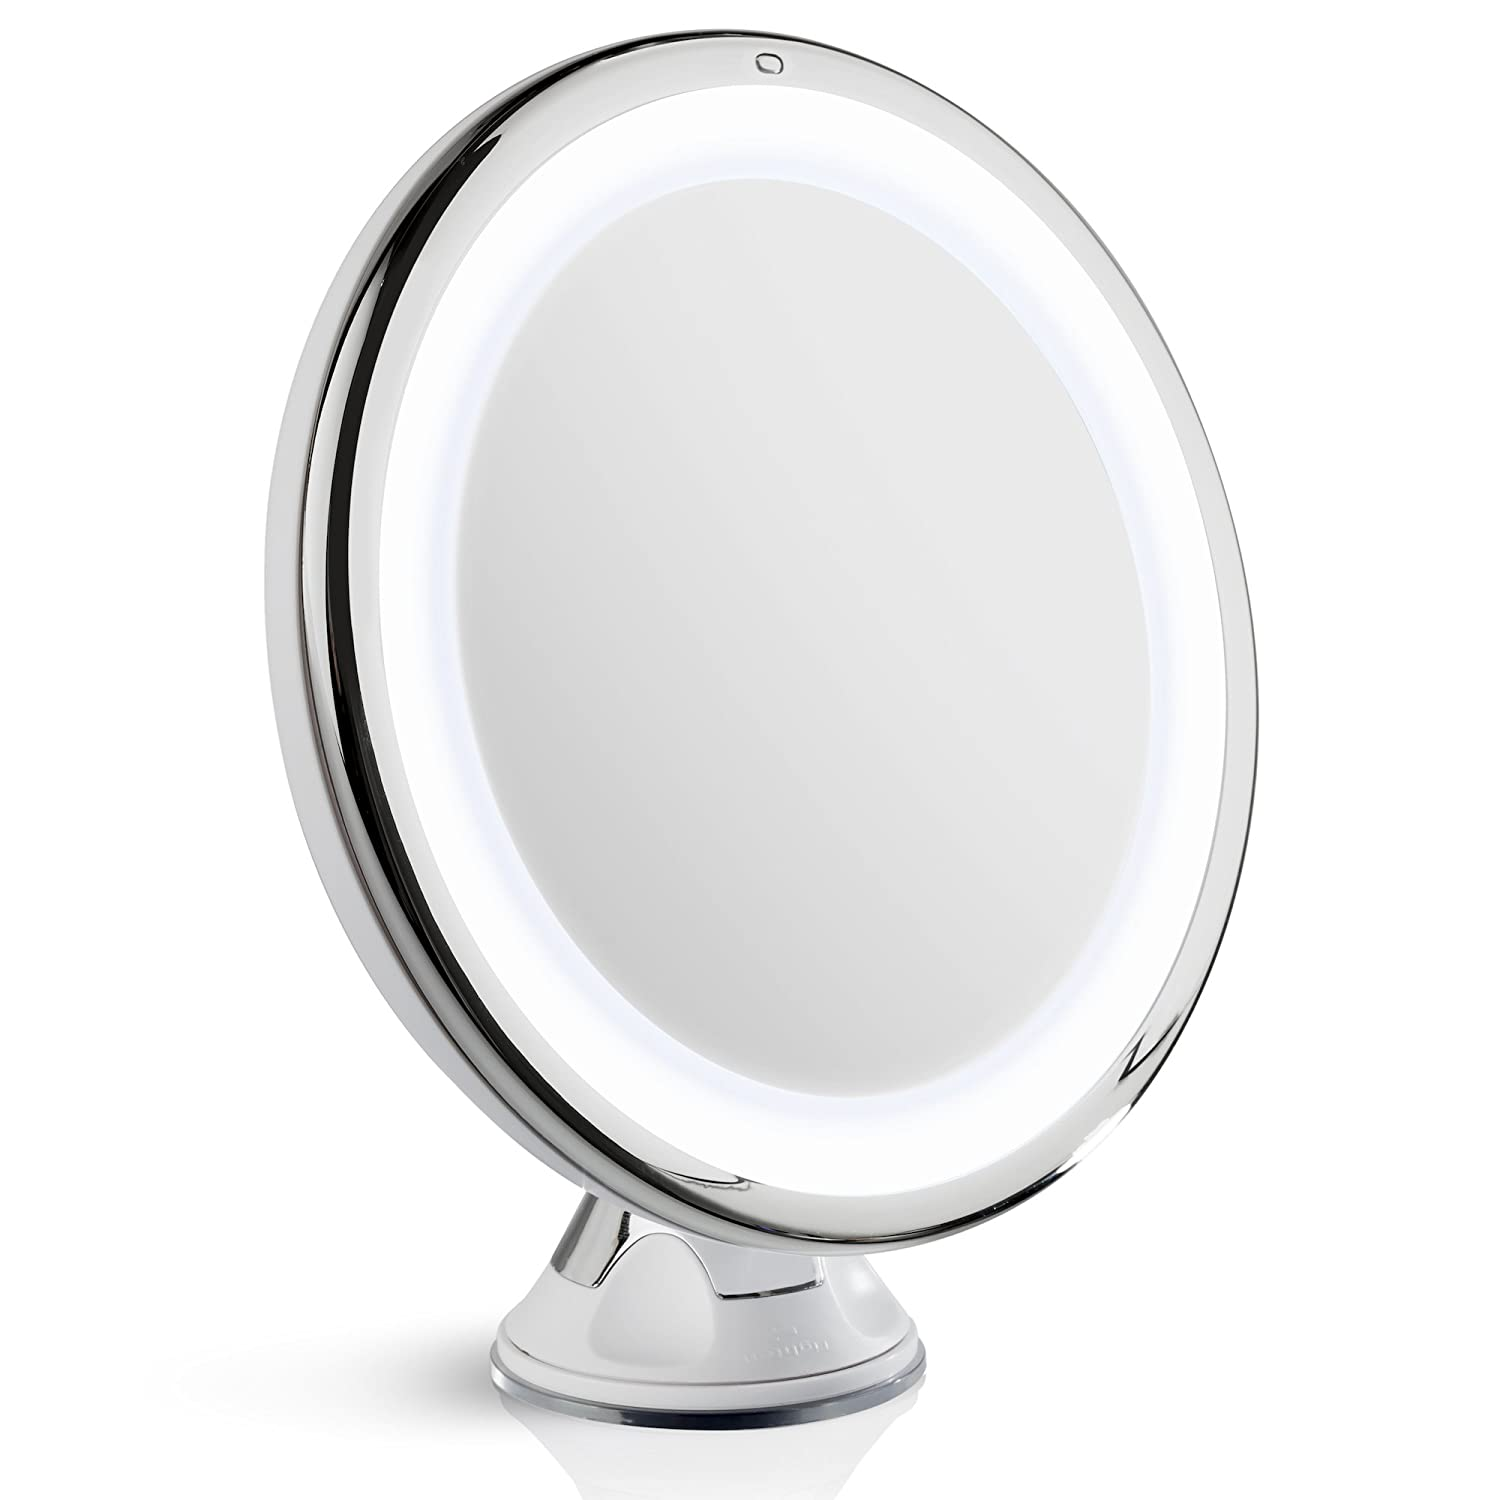 "Fancii Daylight LED 10X Magnifying Makeup Mirror - 8.0"" Large Lighted Travel Mirror - Dimmable Light, Cordless, Operated, Locking Suction, 360 Rotation, Portable & Illuminated"